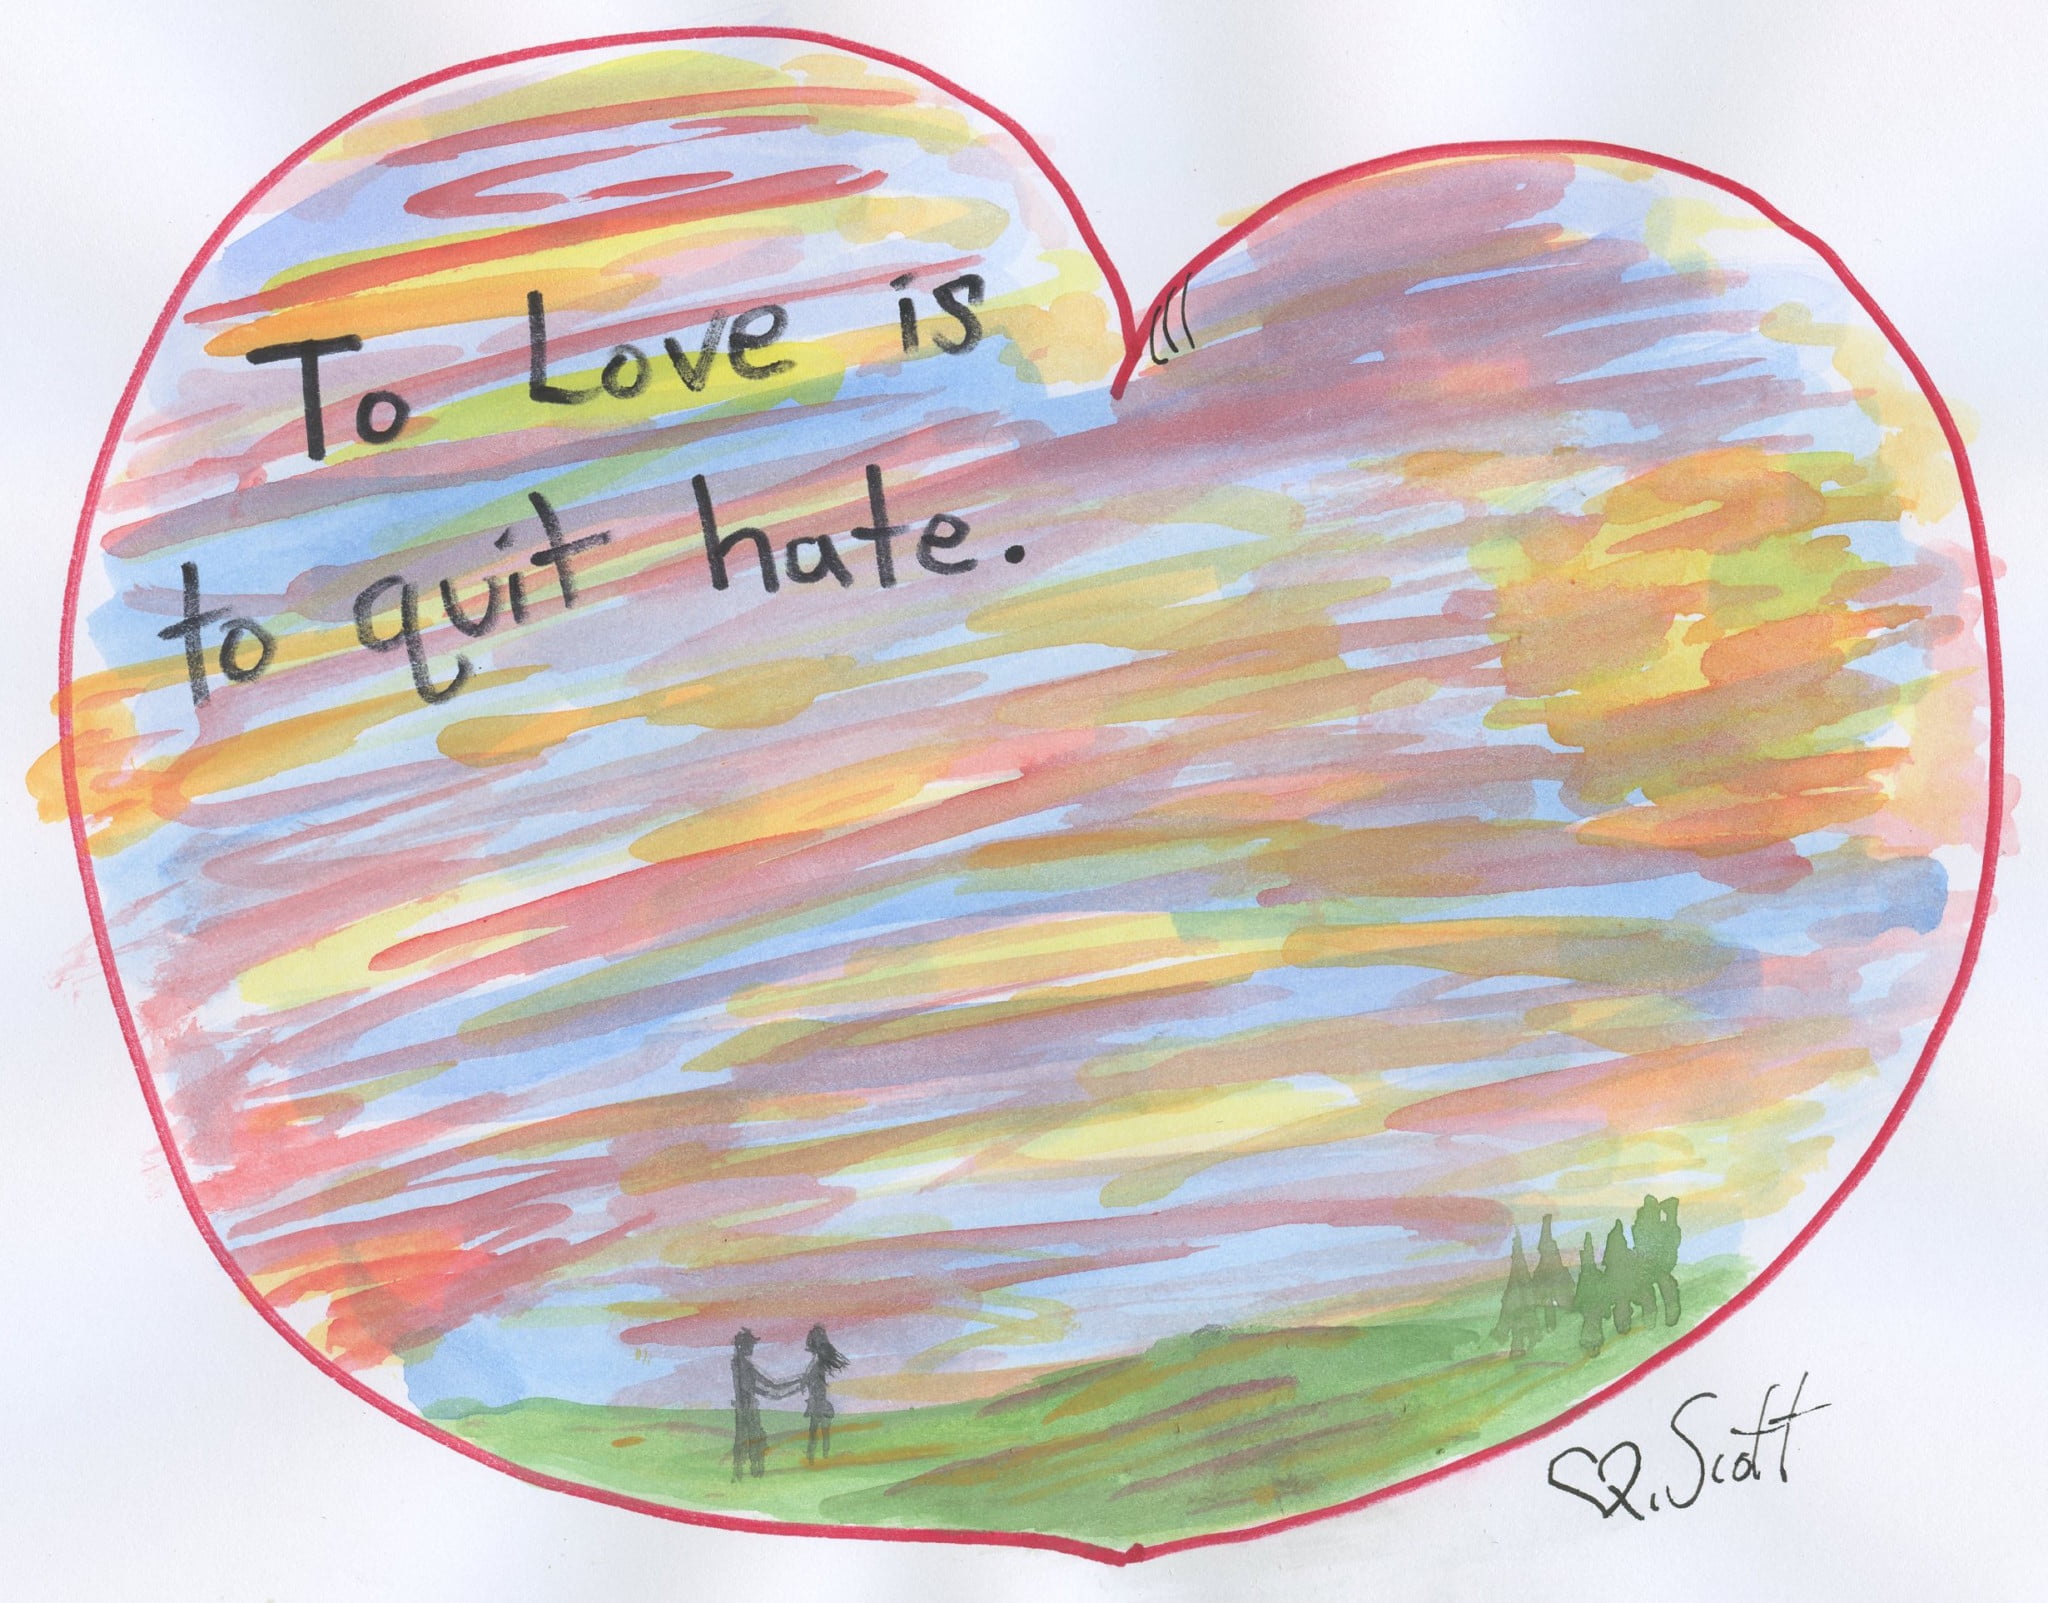 To love is to quit hate